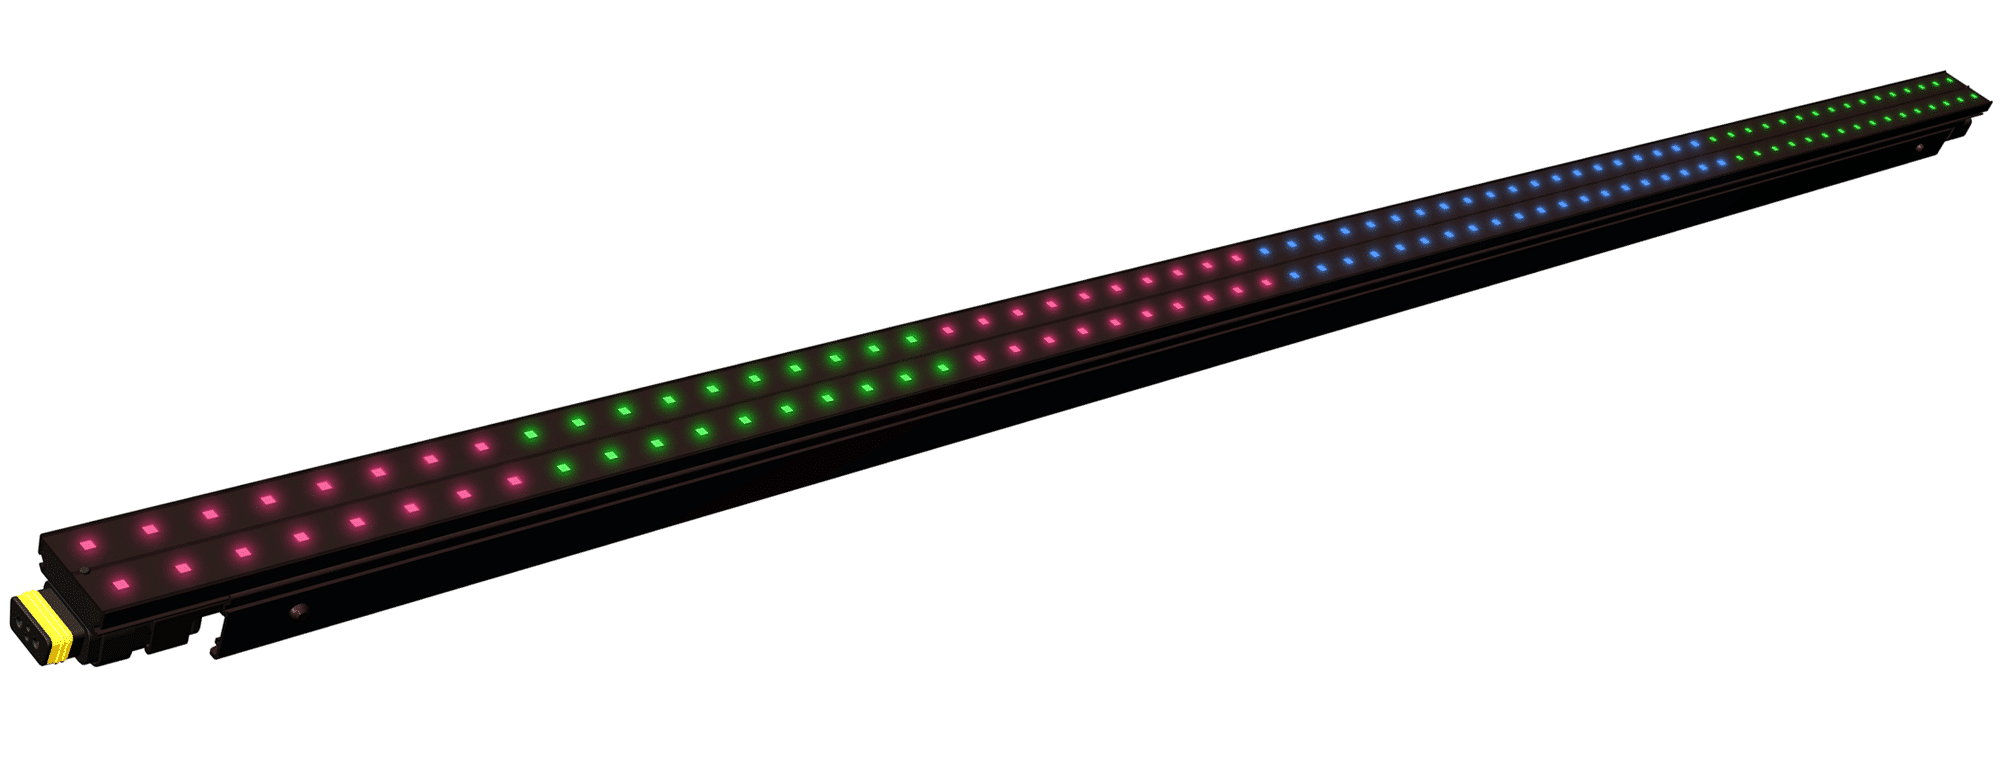 led strip video EVERY LED ON ON PIXEL